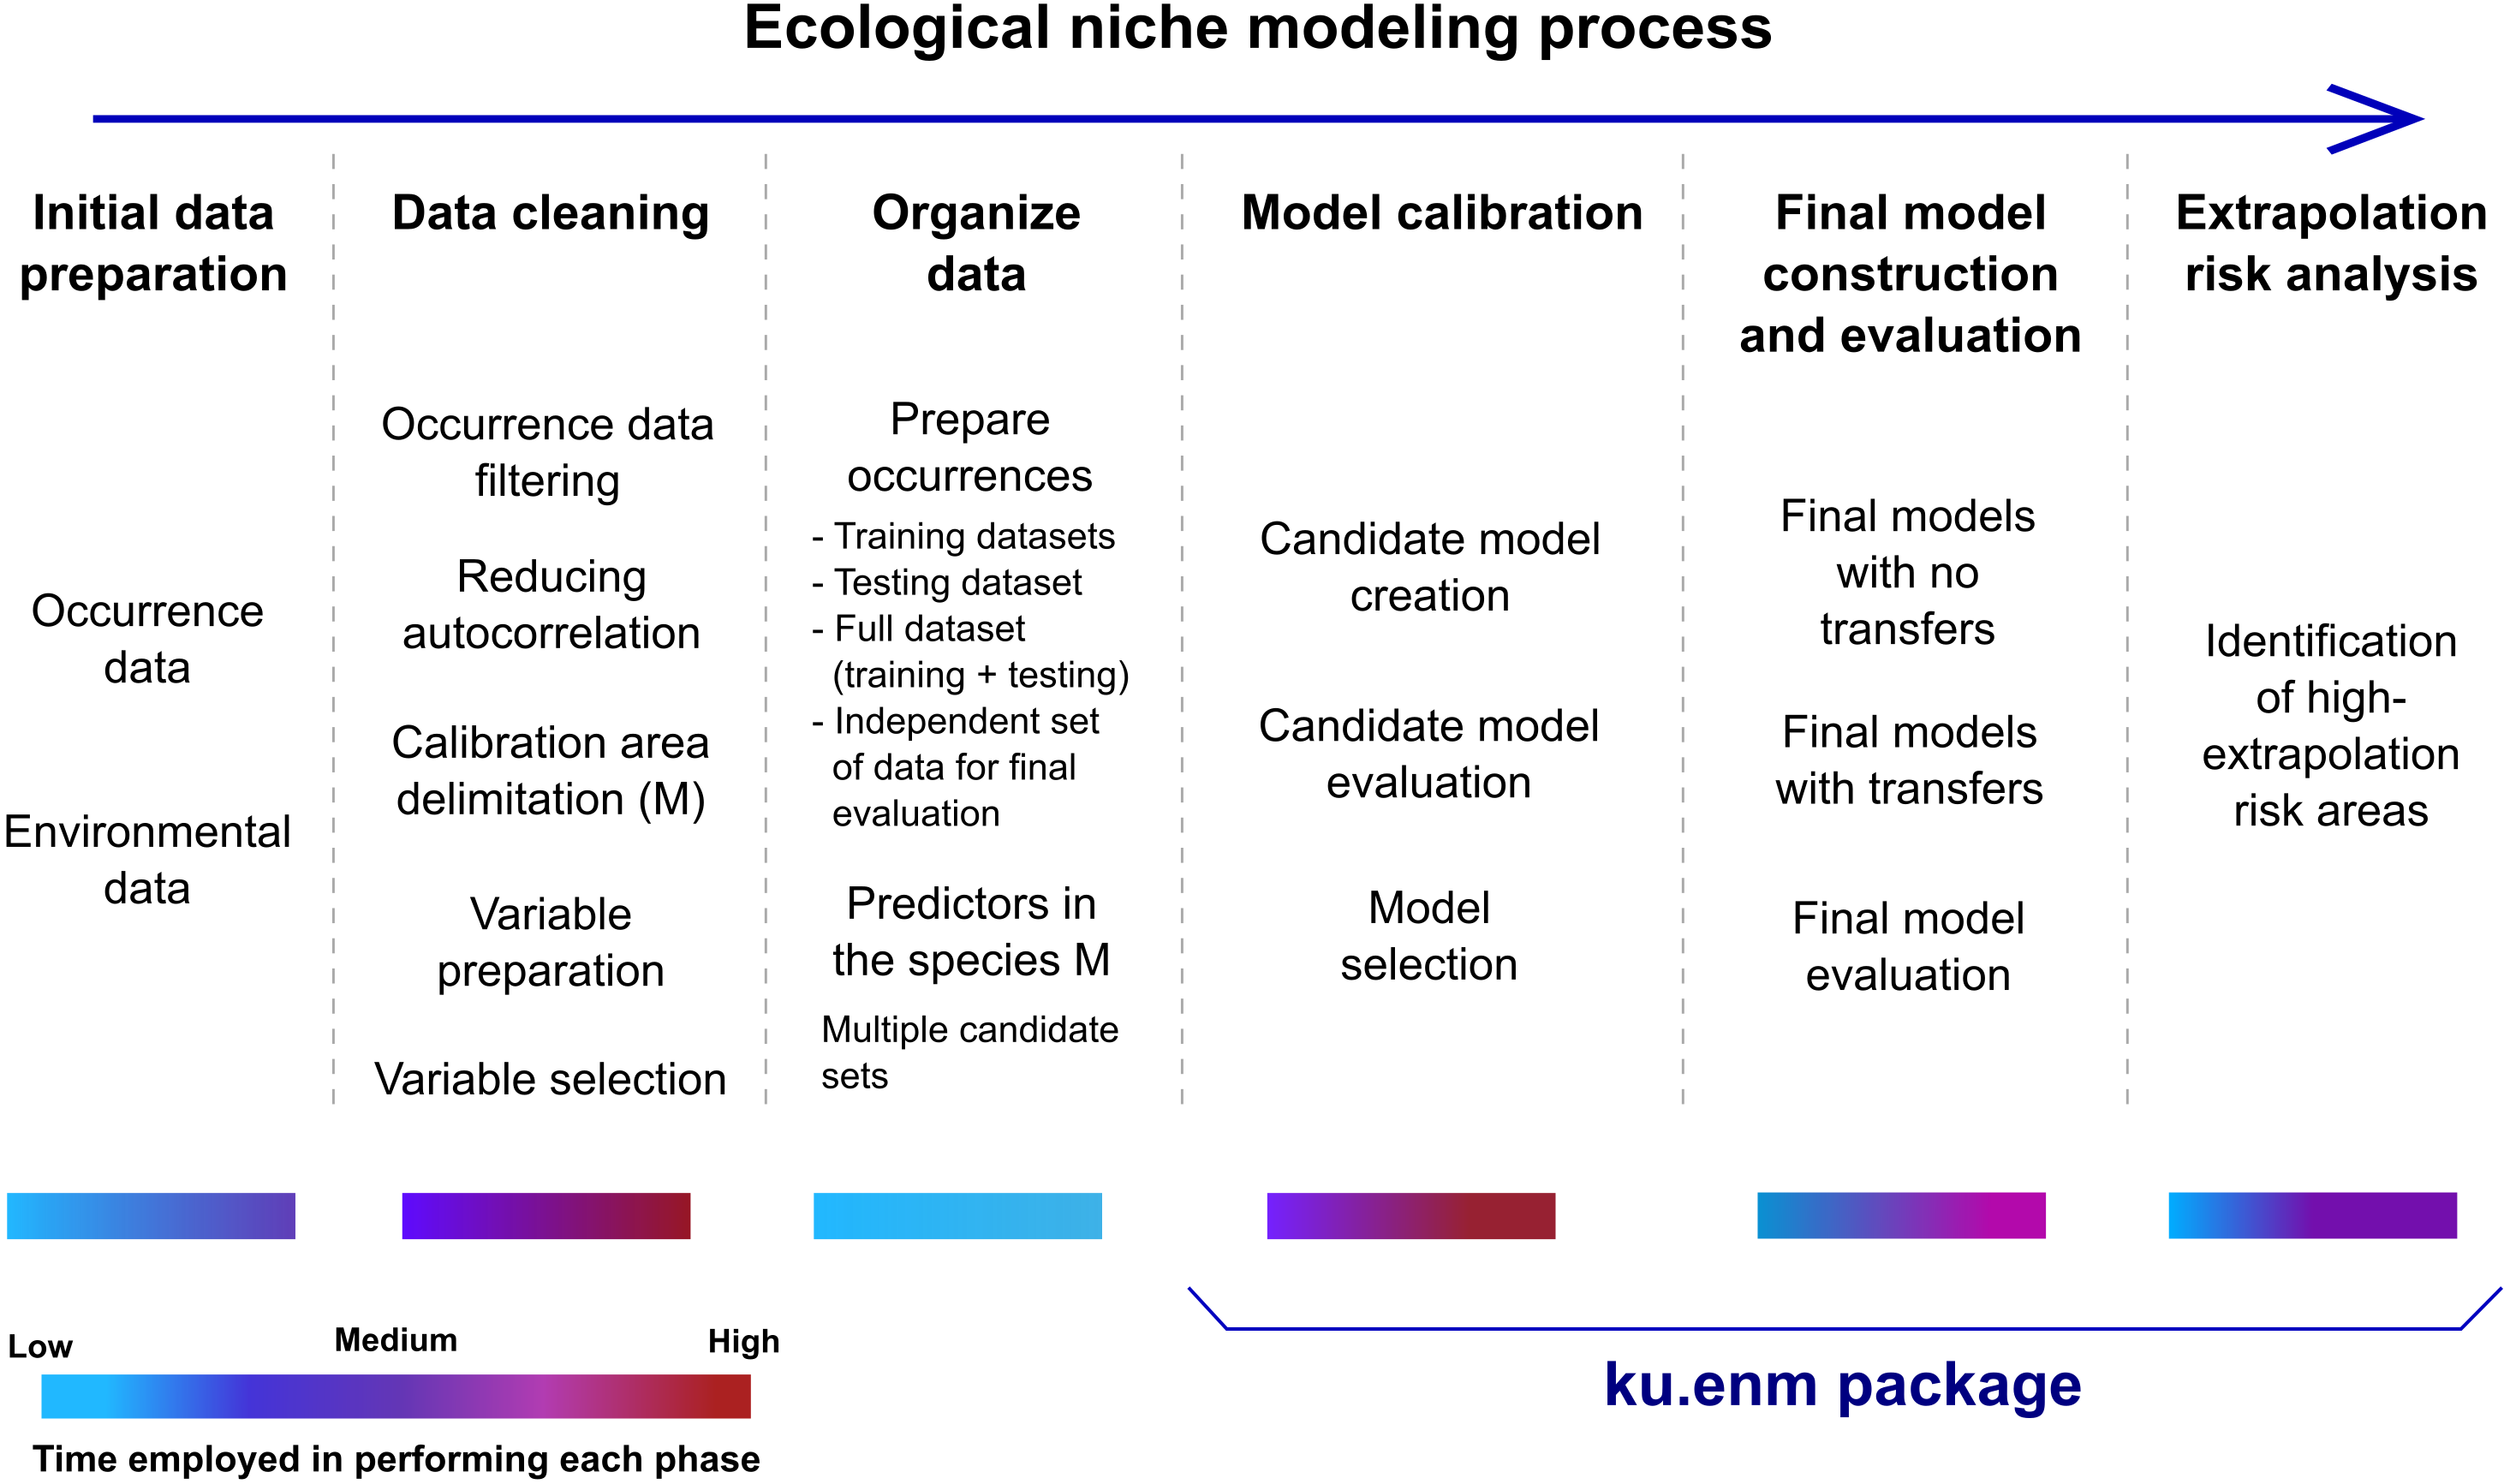 kuenm: an R package for detailed development of ecological niche